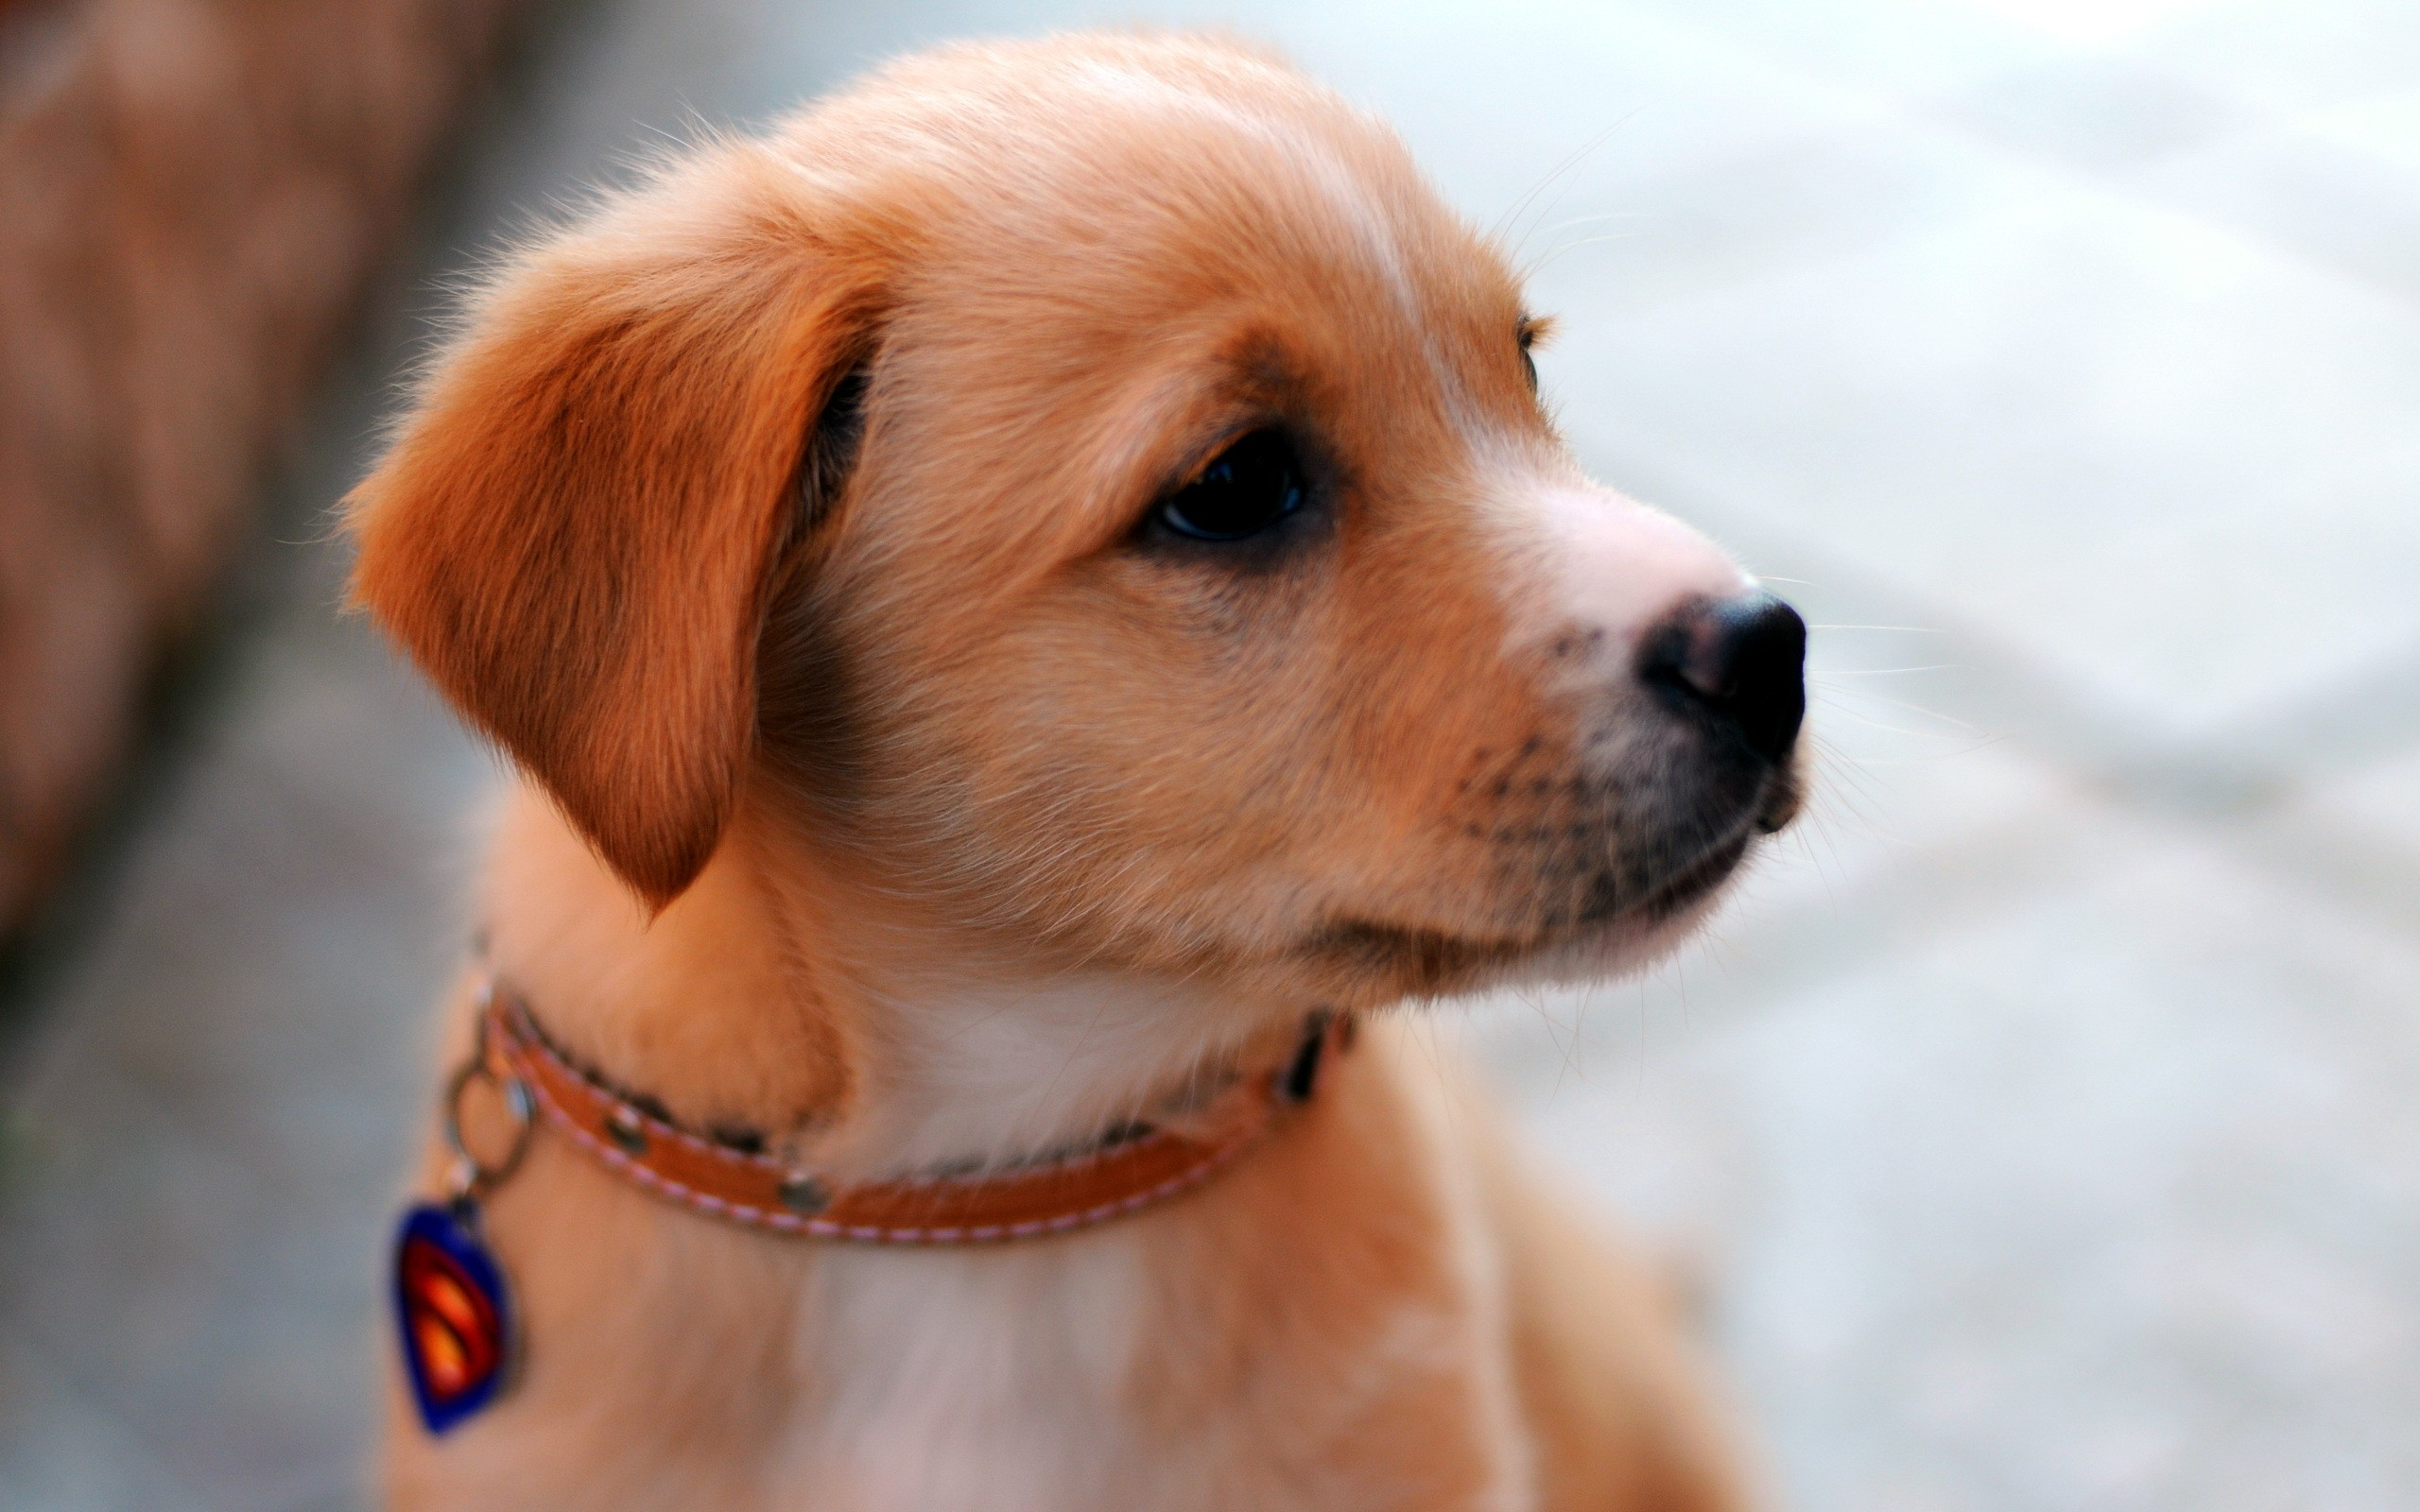 Cute puppy with sensitive eyes wallpaper